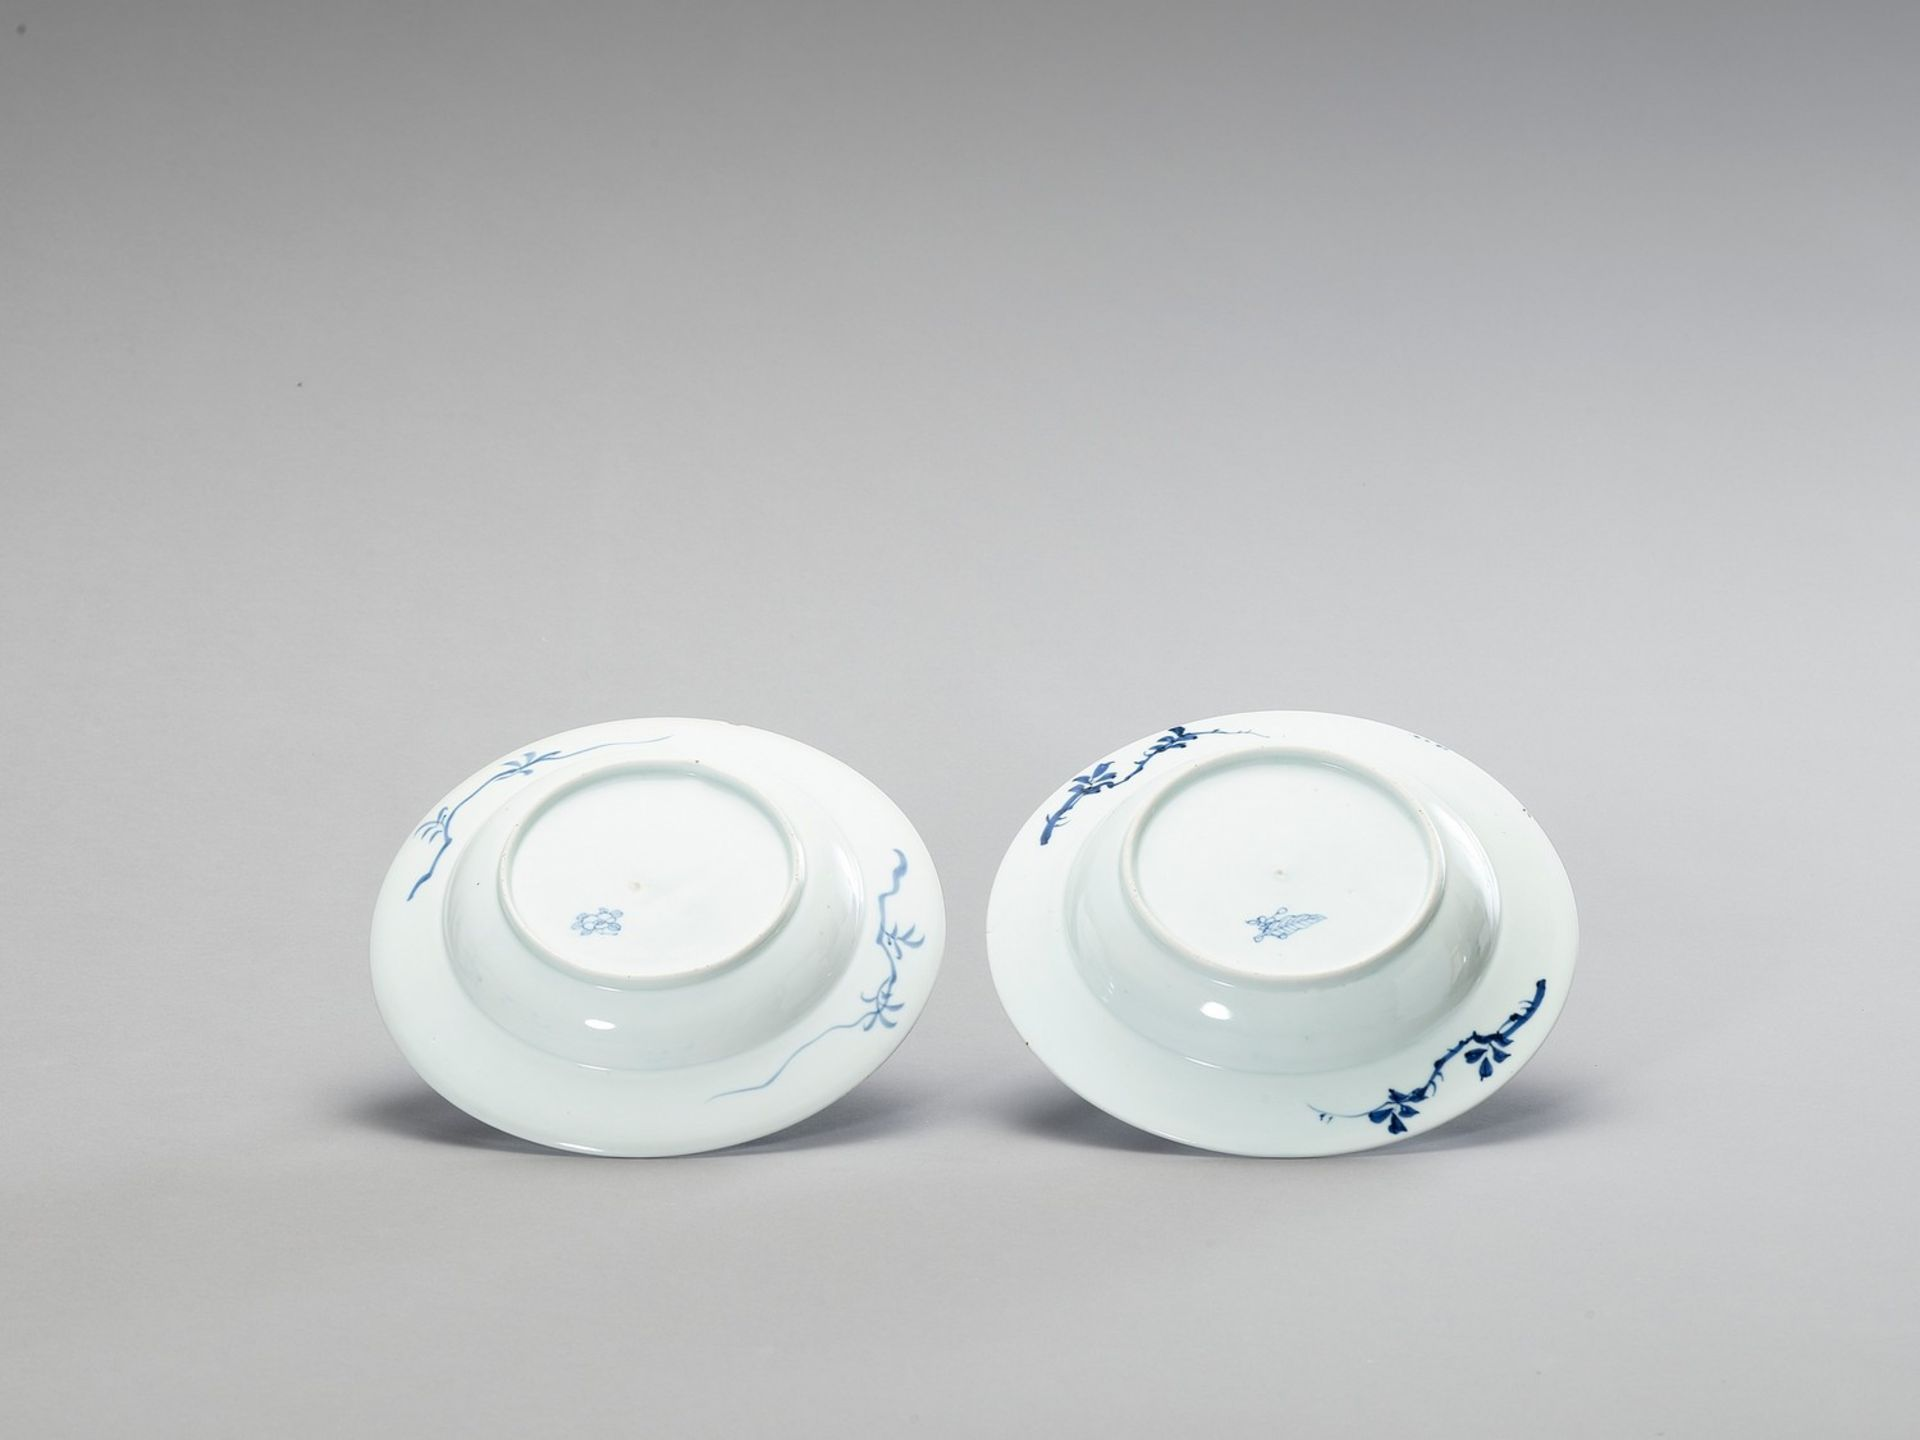 A PAIR OF BLUE AND WHITE PORCELAIN DISHES - Bild 3 aus 4